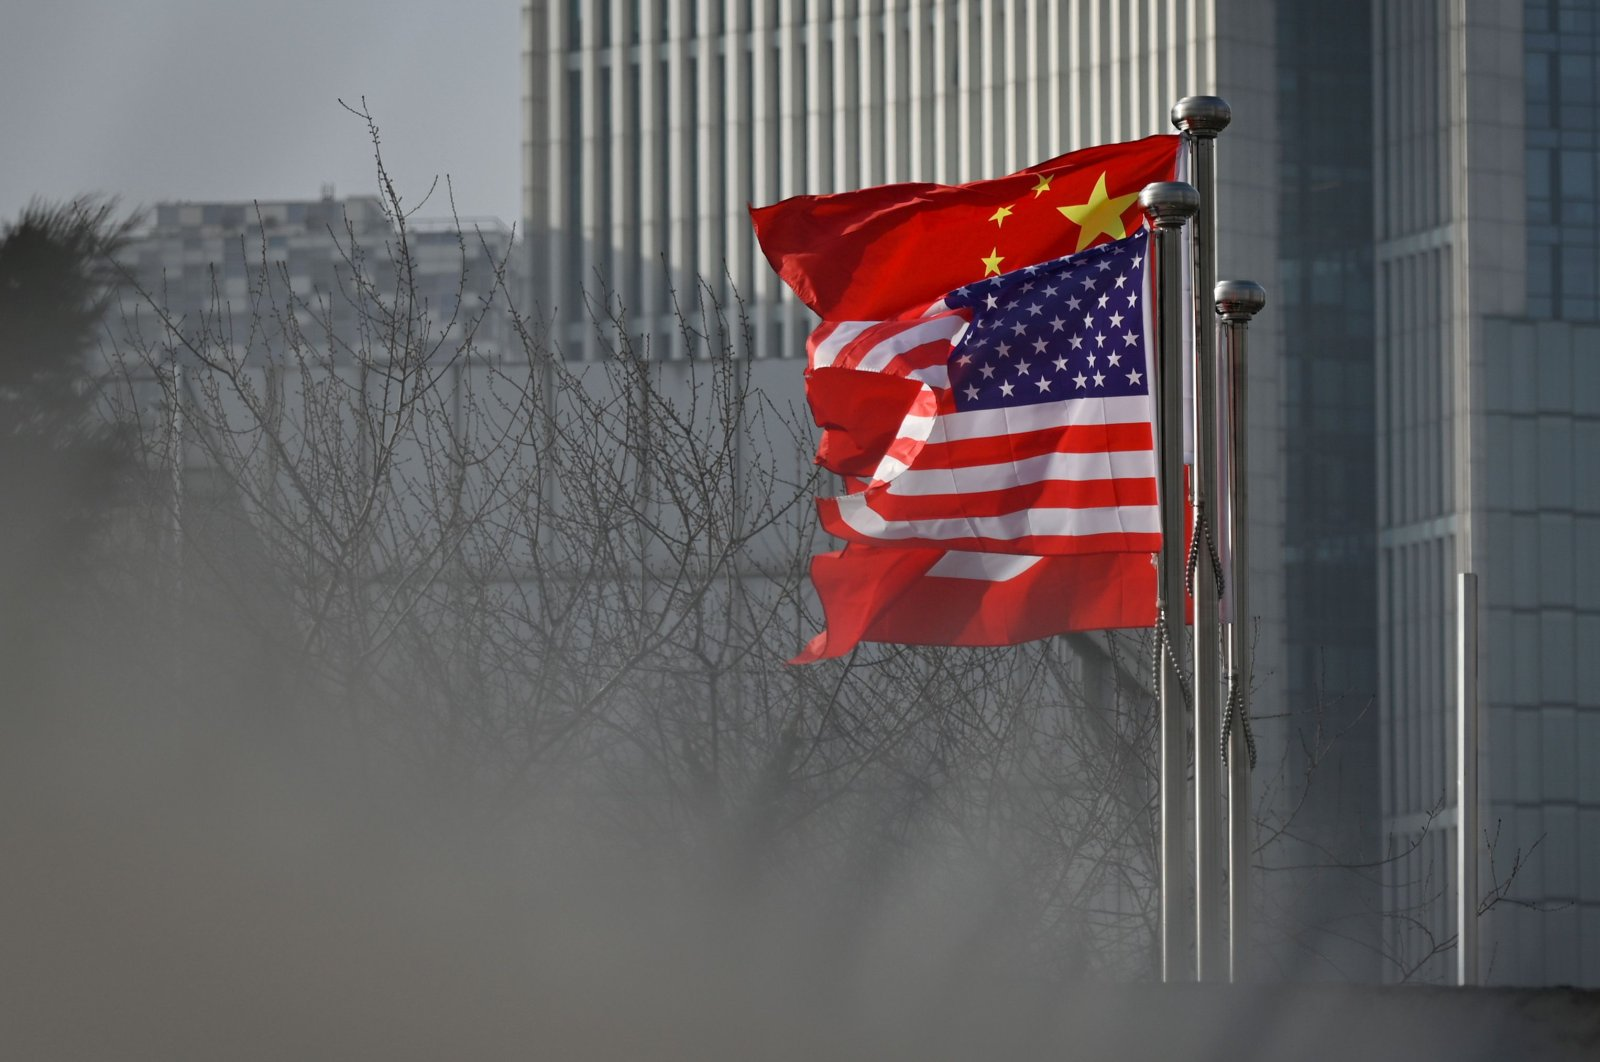 Chinese and U.S. national flags flutter at the entrance of a company office building in Beijing, Jan. 19, 2020. (AFP Photo)